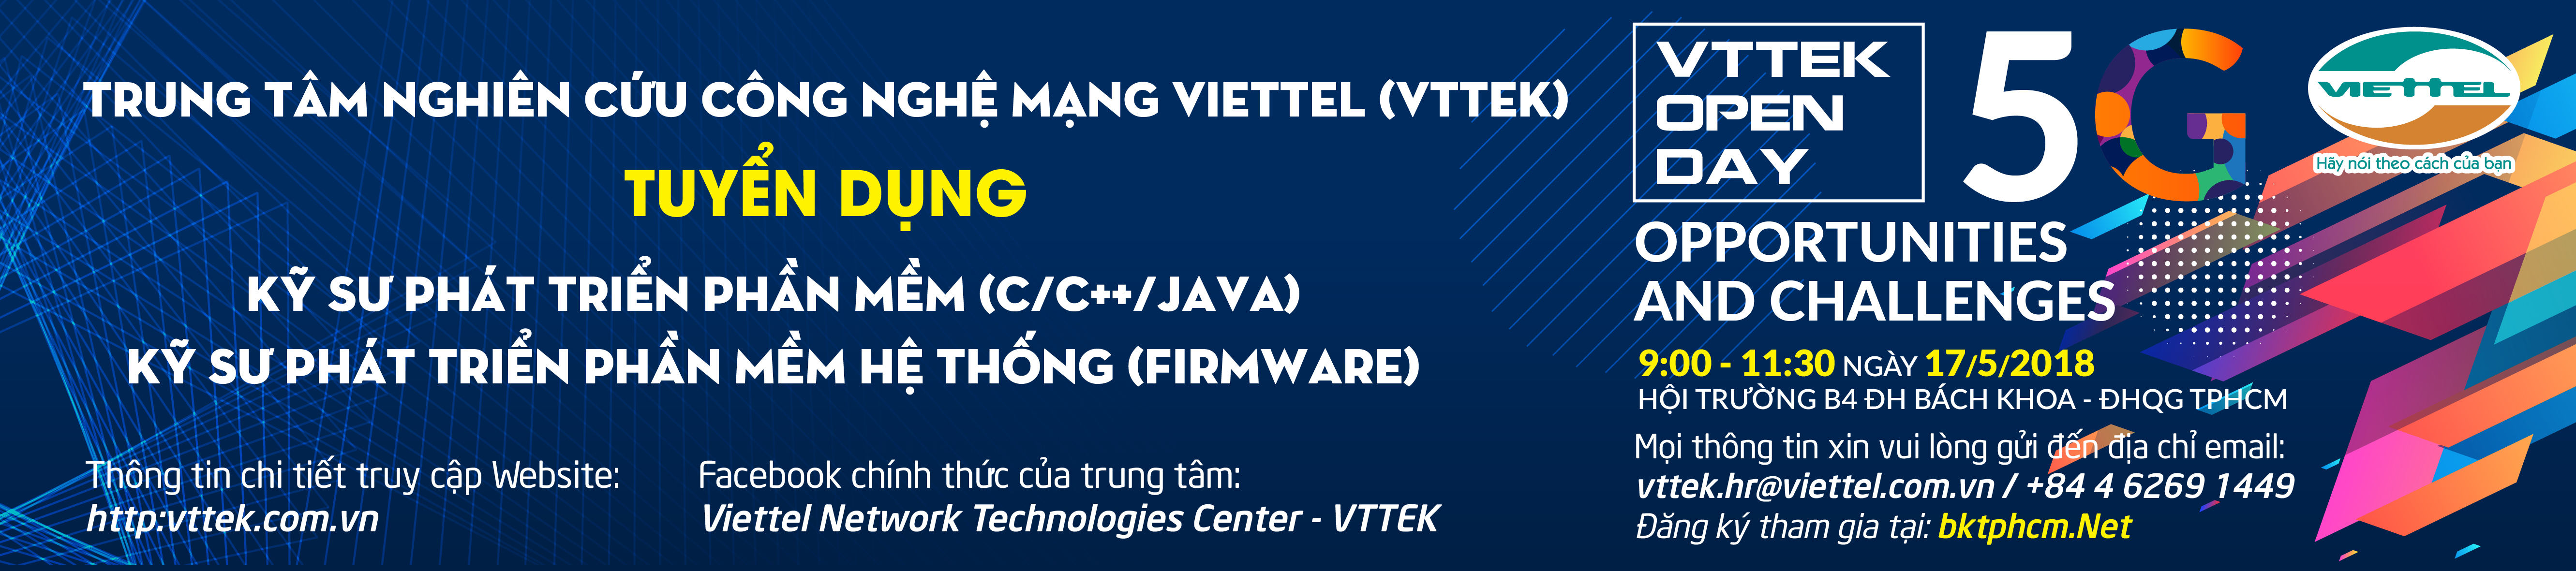 "Hội thảo công nghệ & Hướng nghiệp ""VTTEK Open Day: 5G Opportunities and Challenges"""